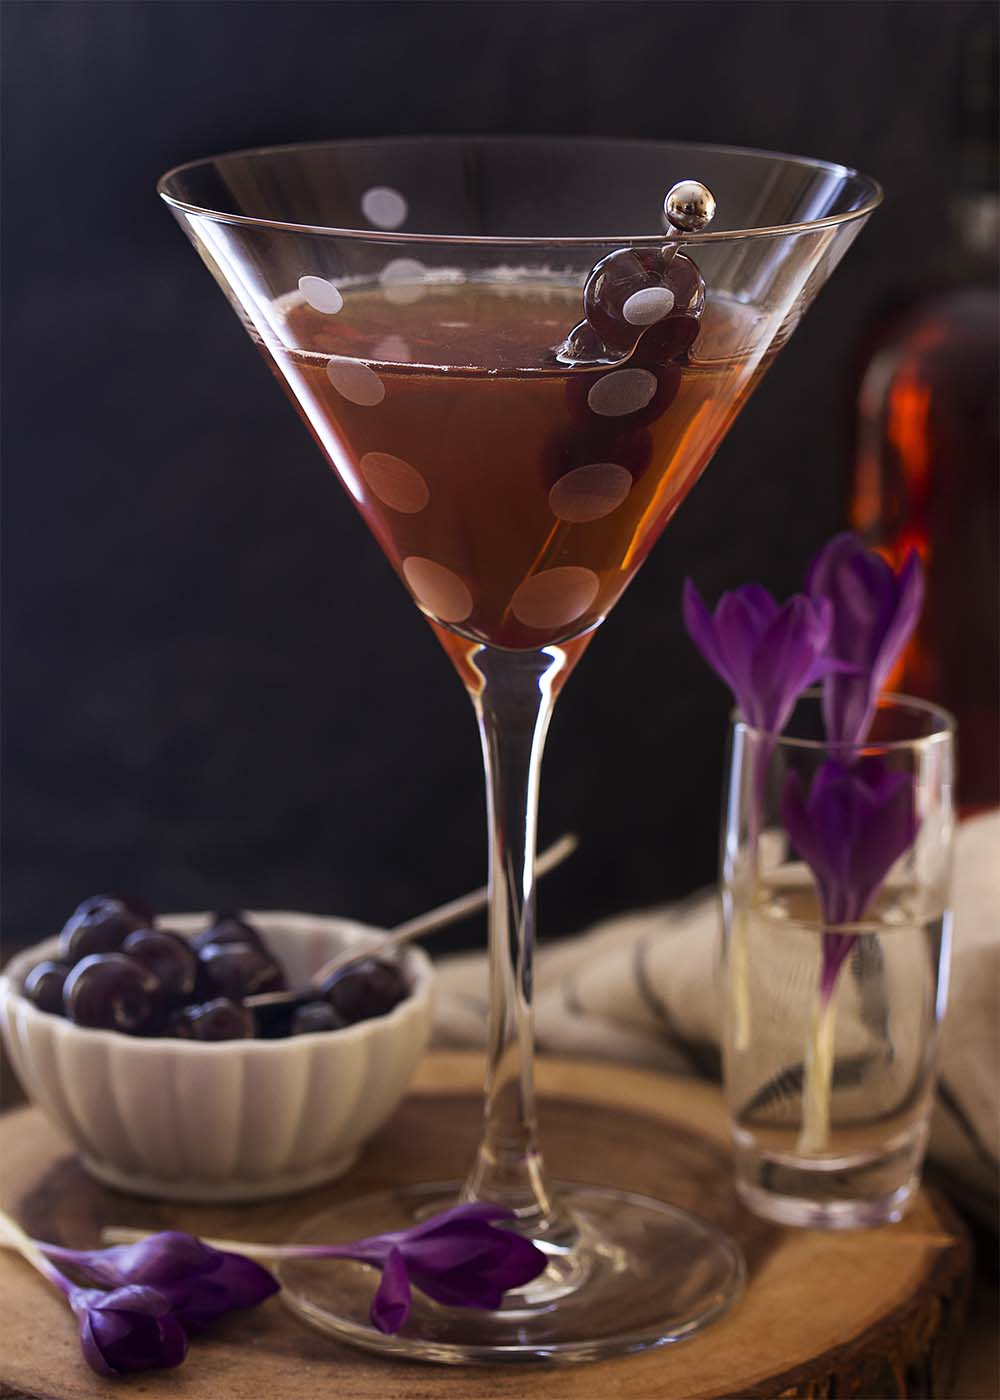 A tall martini glass containing a classic Manhattan cocktail garnished with three Amarena cherries.